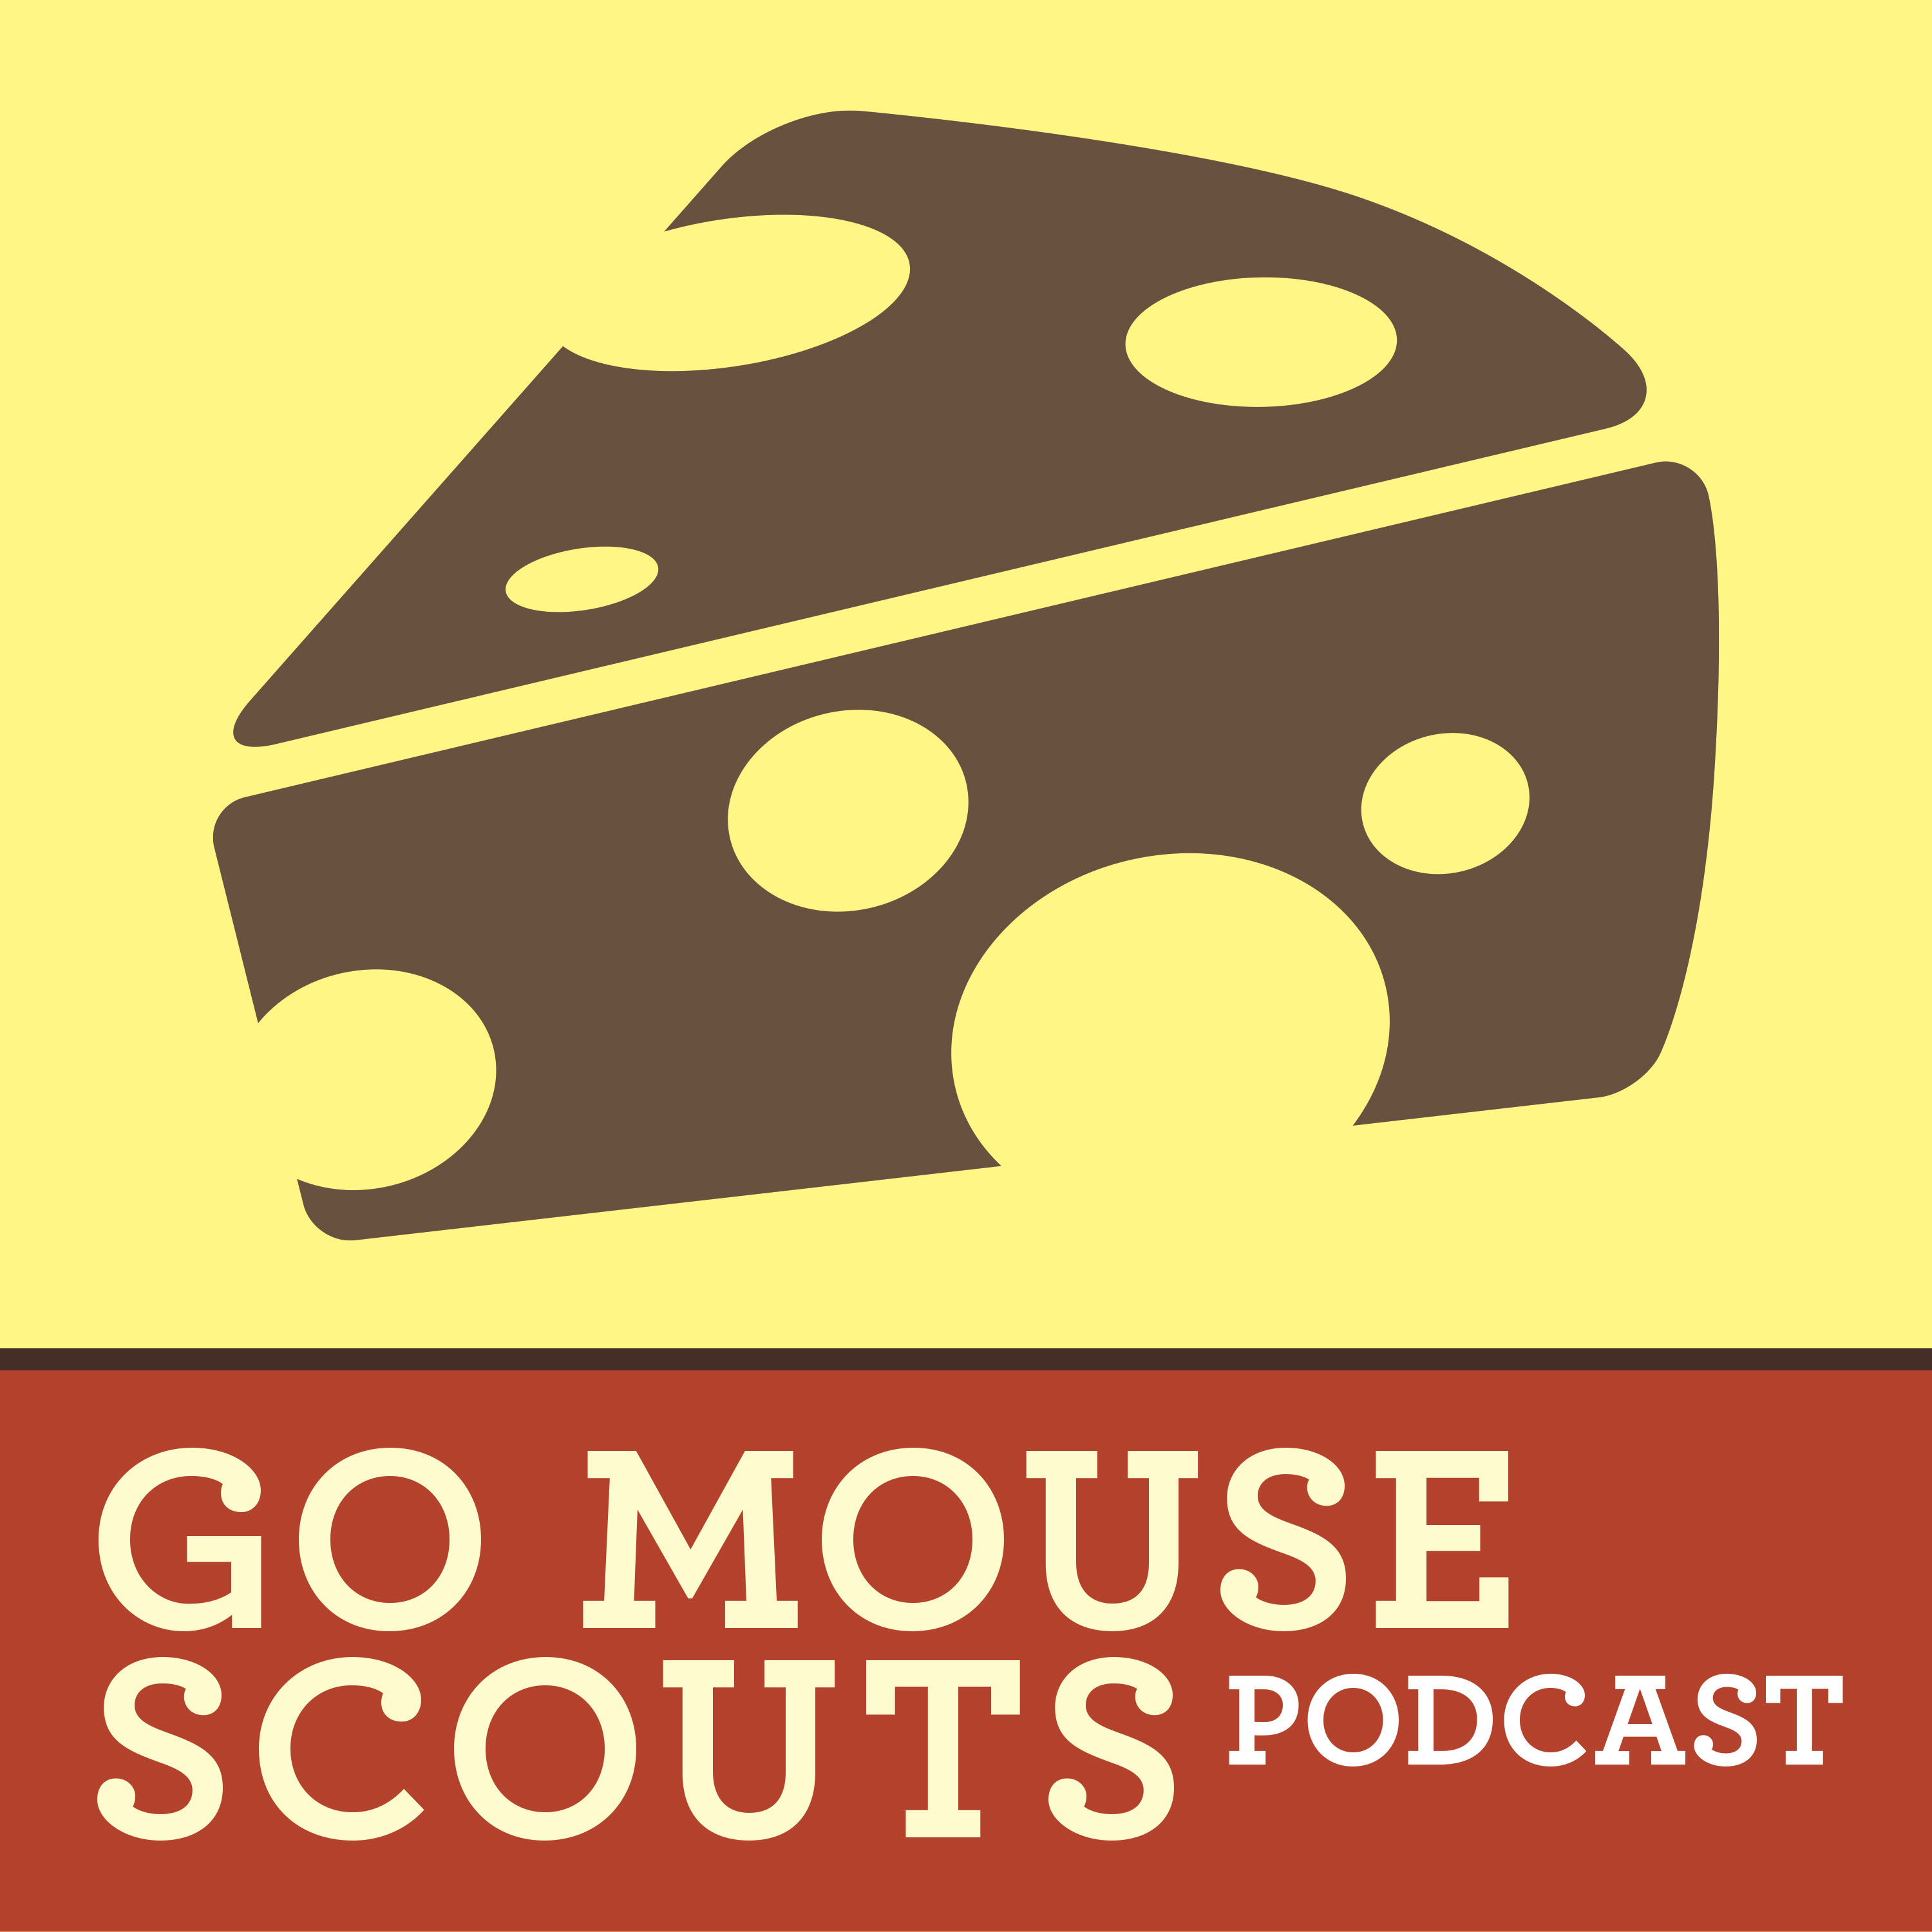 Go Mouse Scouts | Visiting Disneyland and Disney World with Kids | A Fan Podcast Bringing you Disney Park Tips & Family Fun! show art